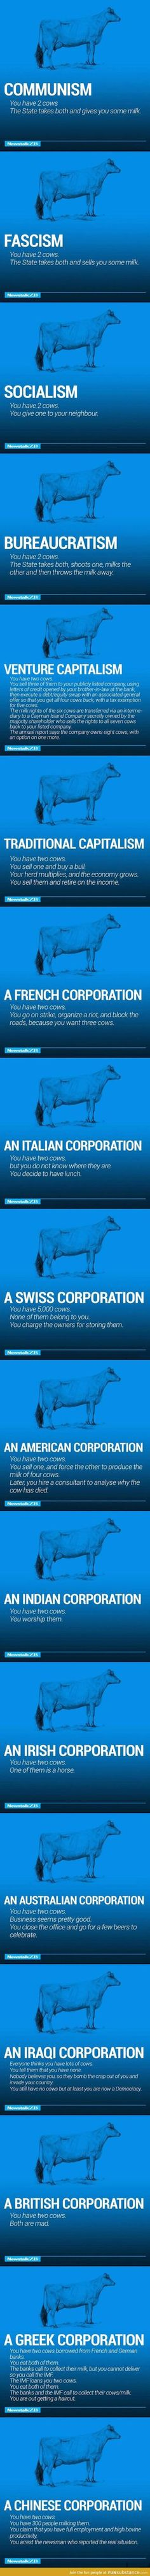 The World's Economy Explained With Just Two Cows